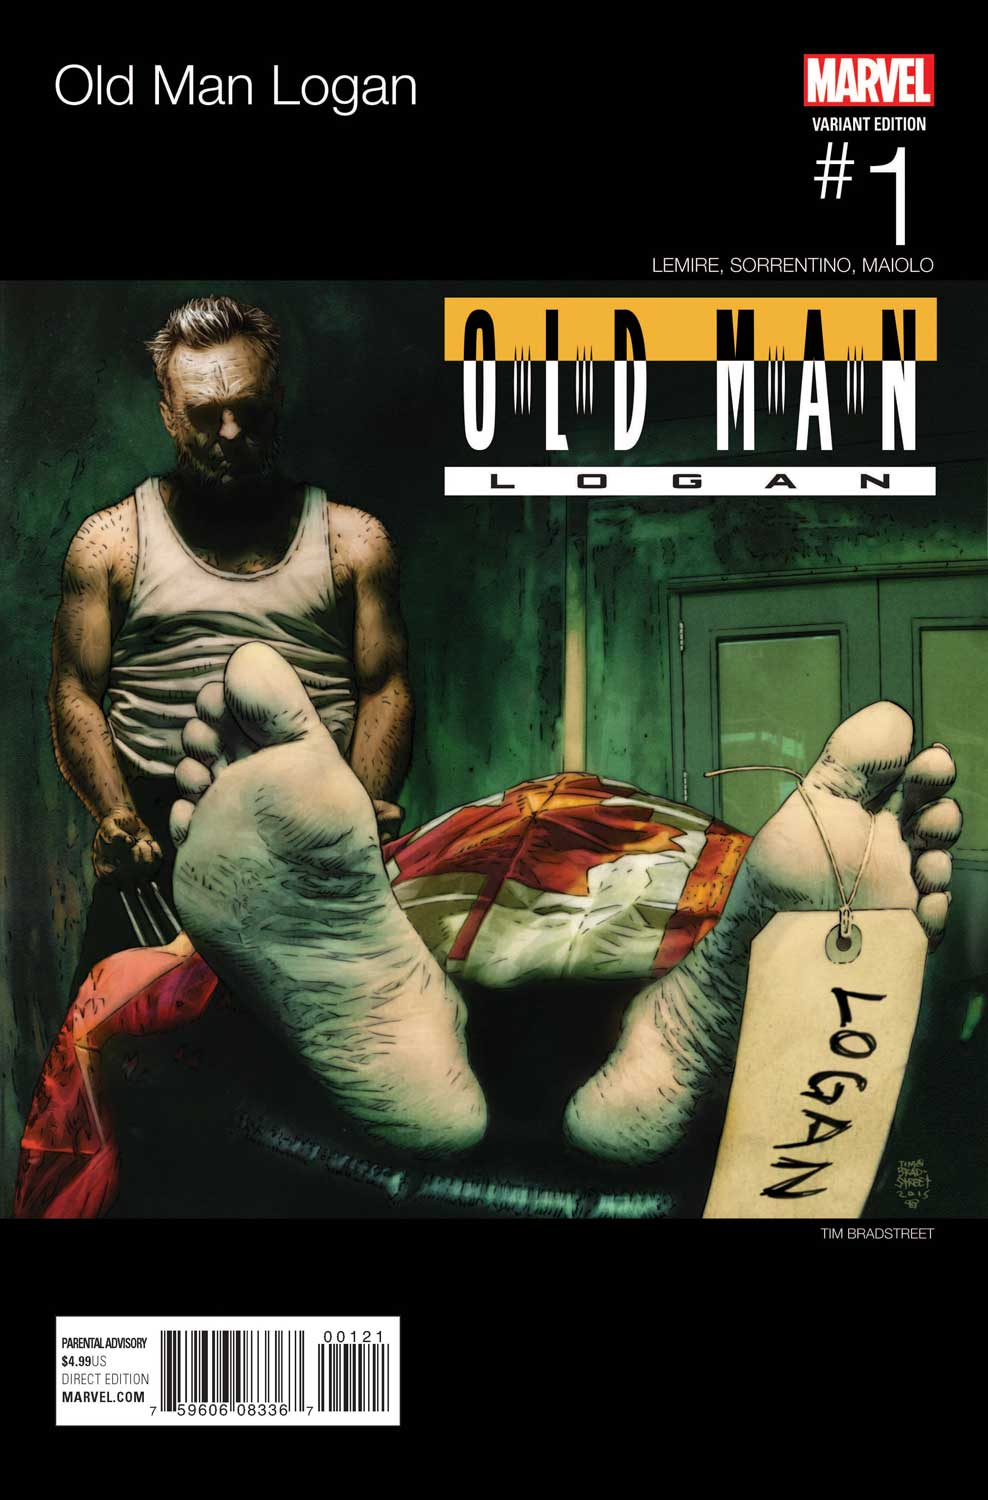 Old_Man_Logan_1_Bradstreet_Hip_Hop_Variant